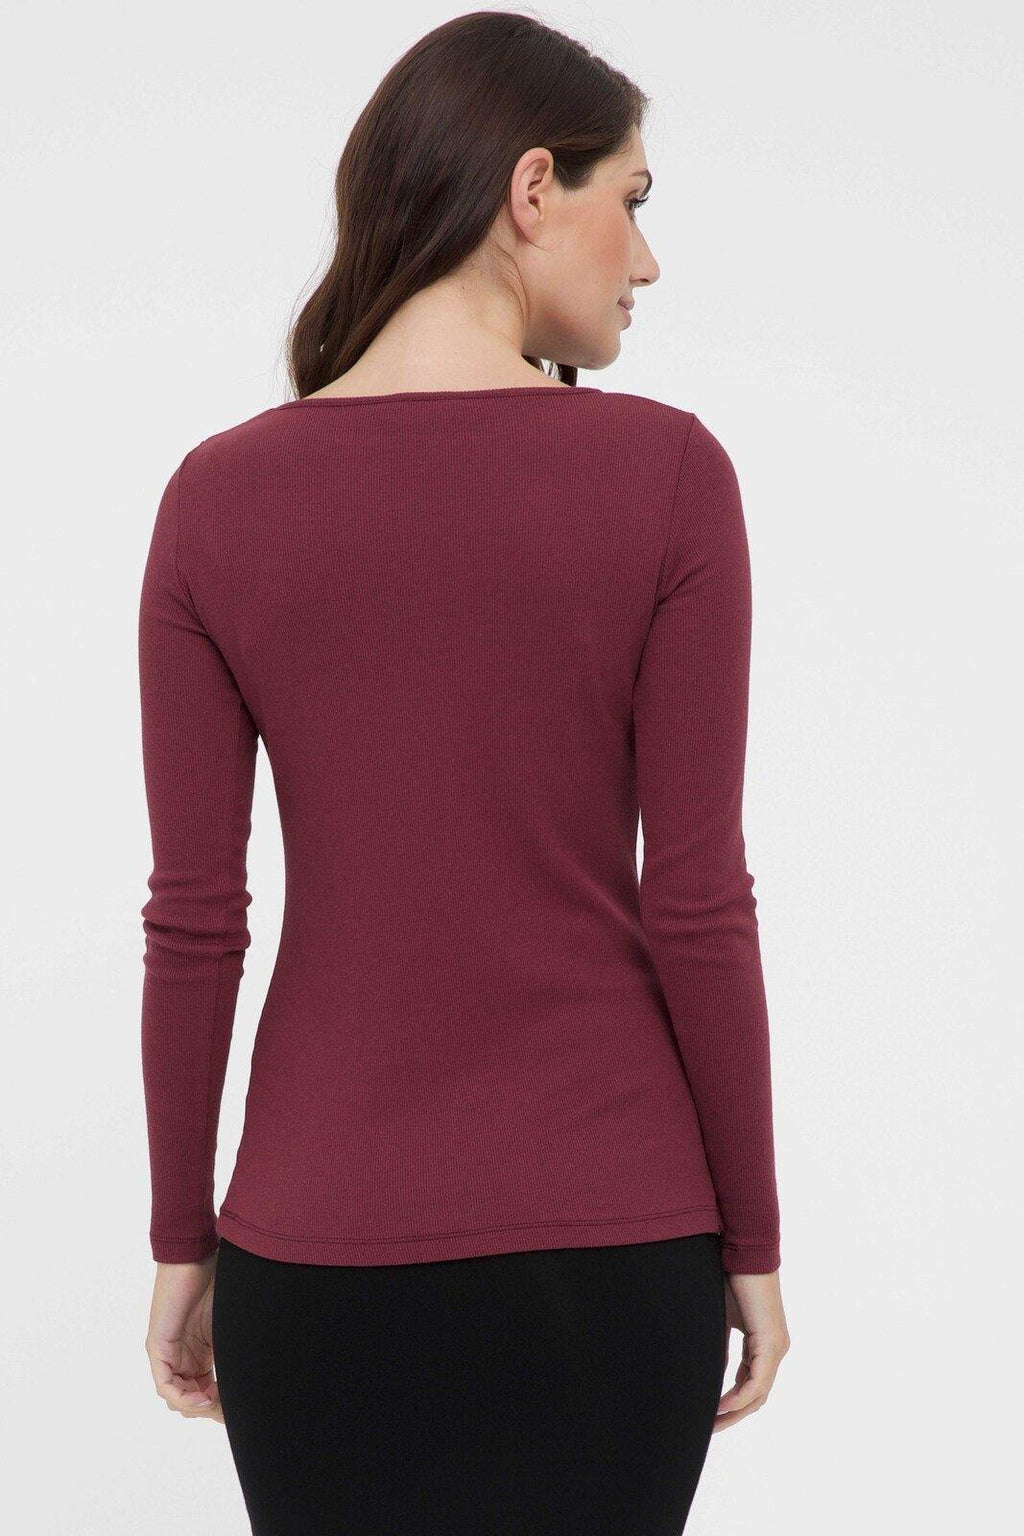 Bamboo Body Ribbed Boatneck Top - Burgundy | Buy Online at Weekends